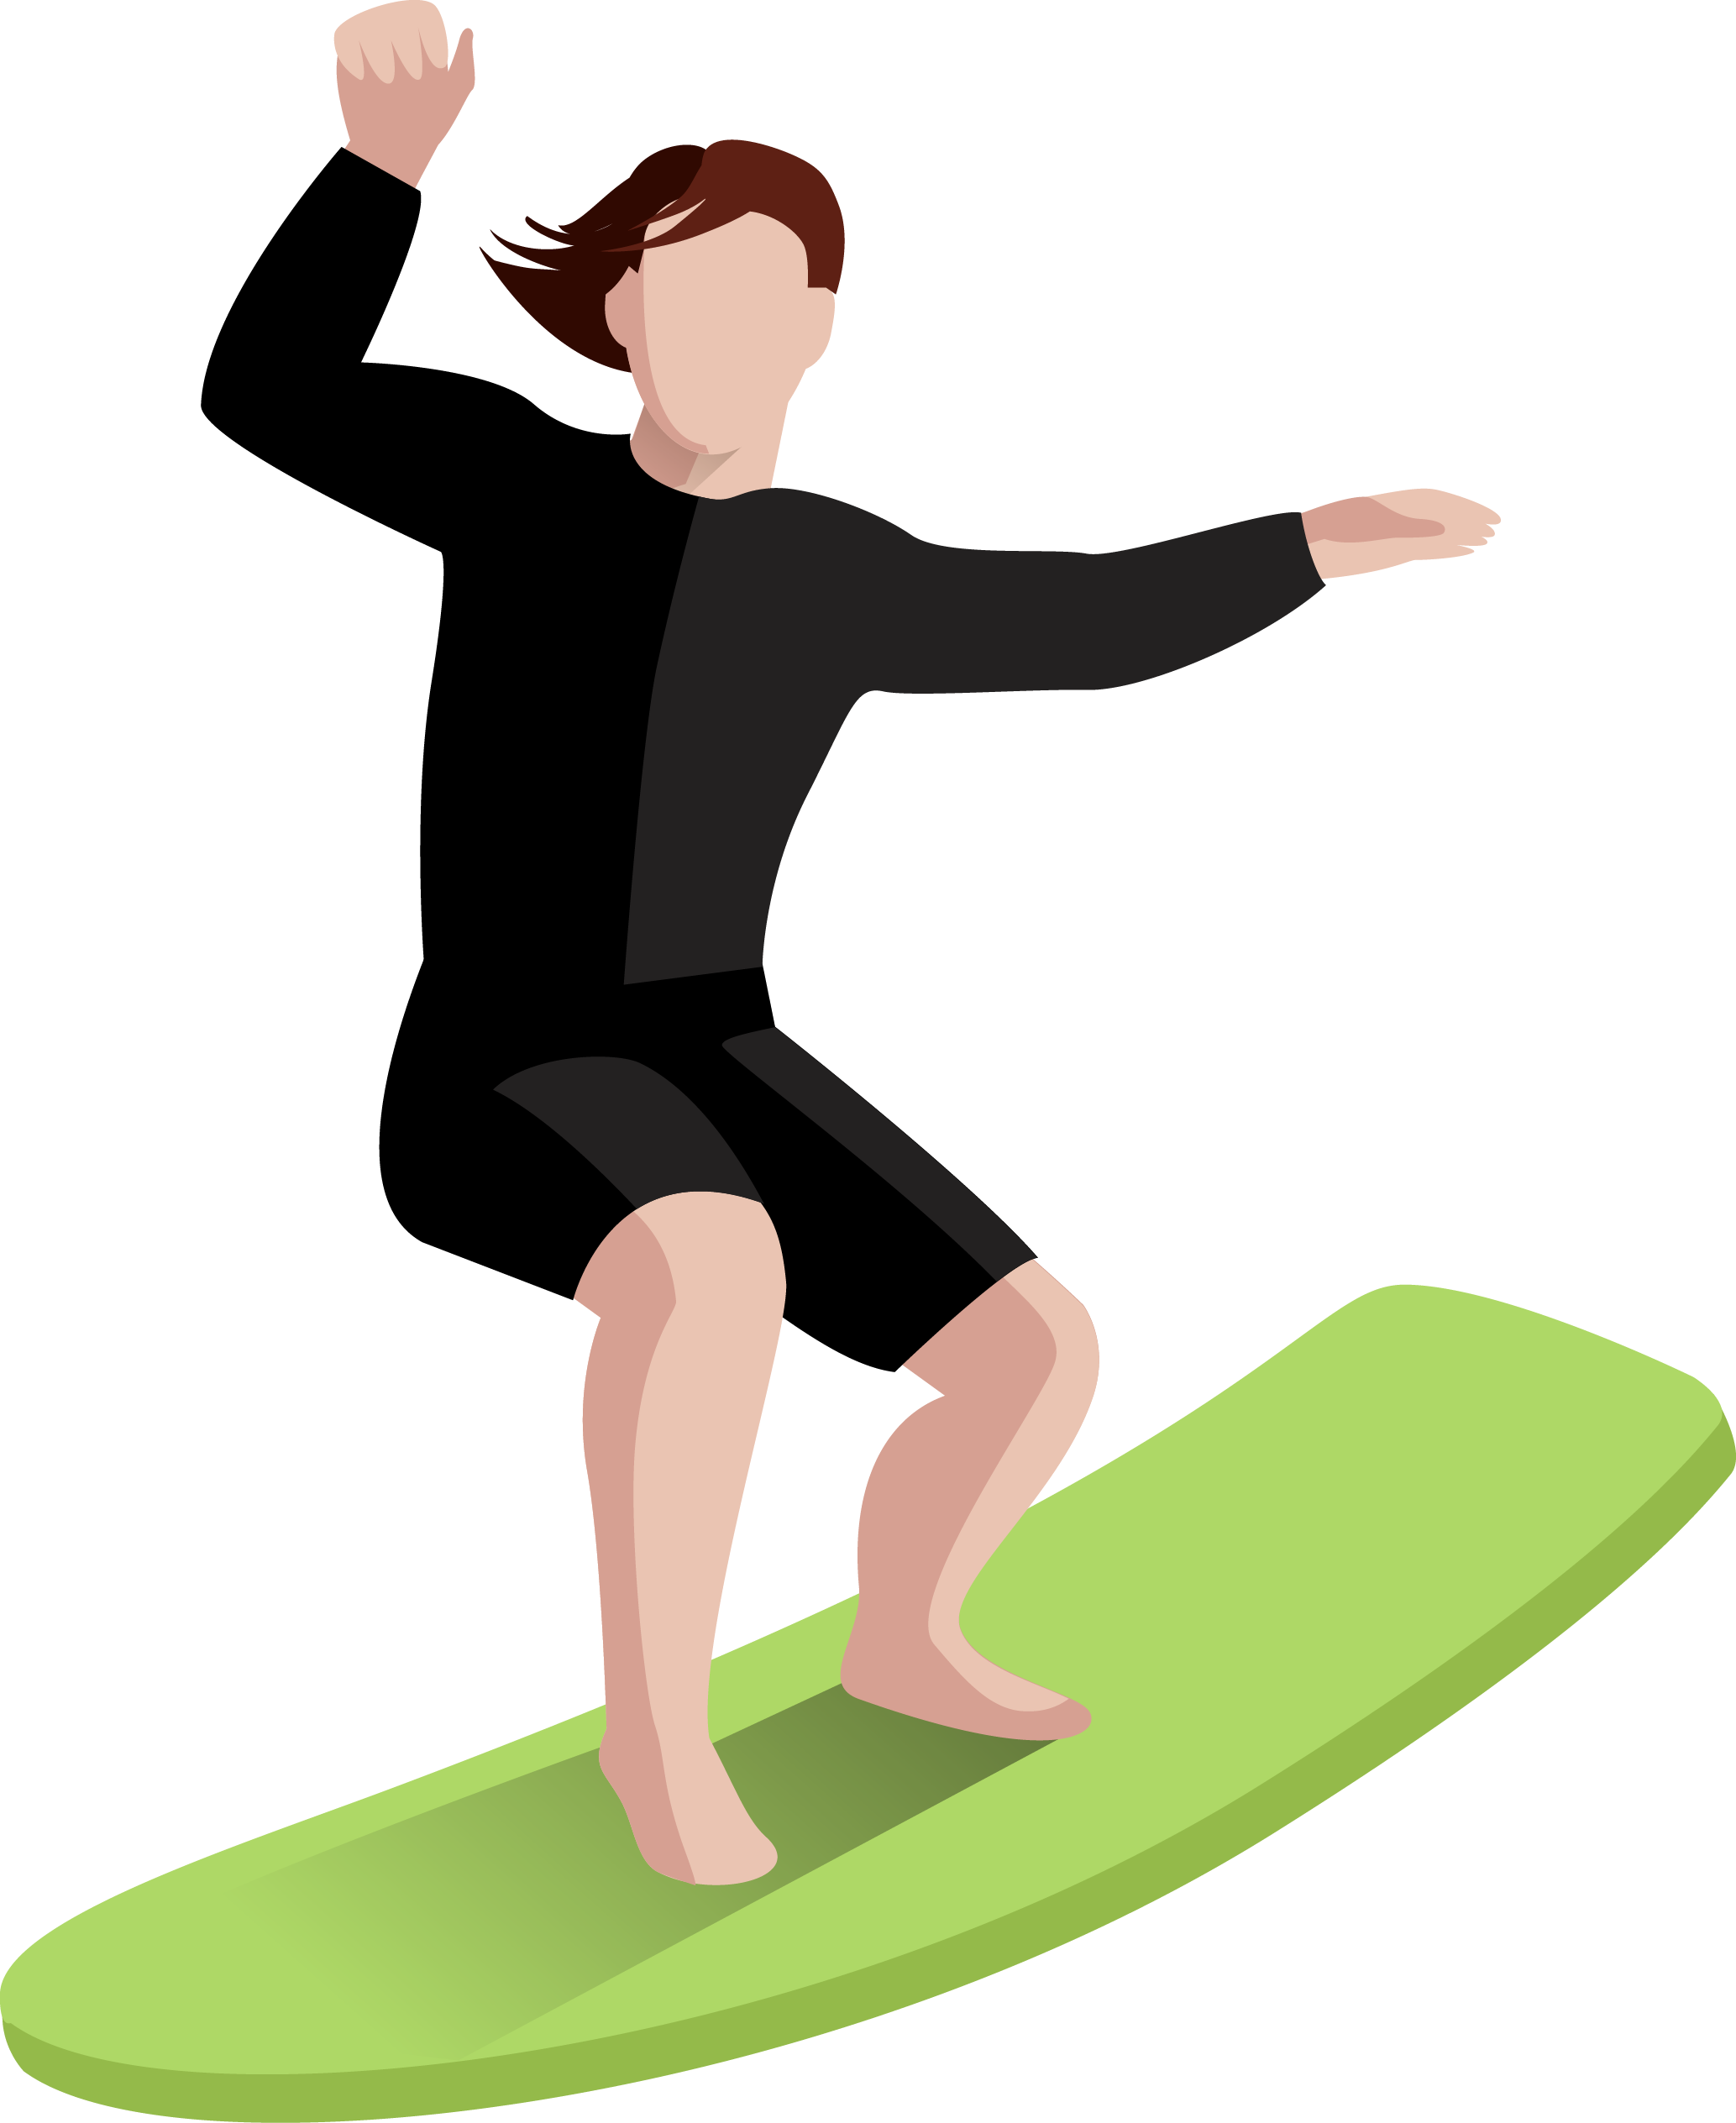 Skiing clipart water ski, Skiing water ski Transparent FREE.